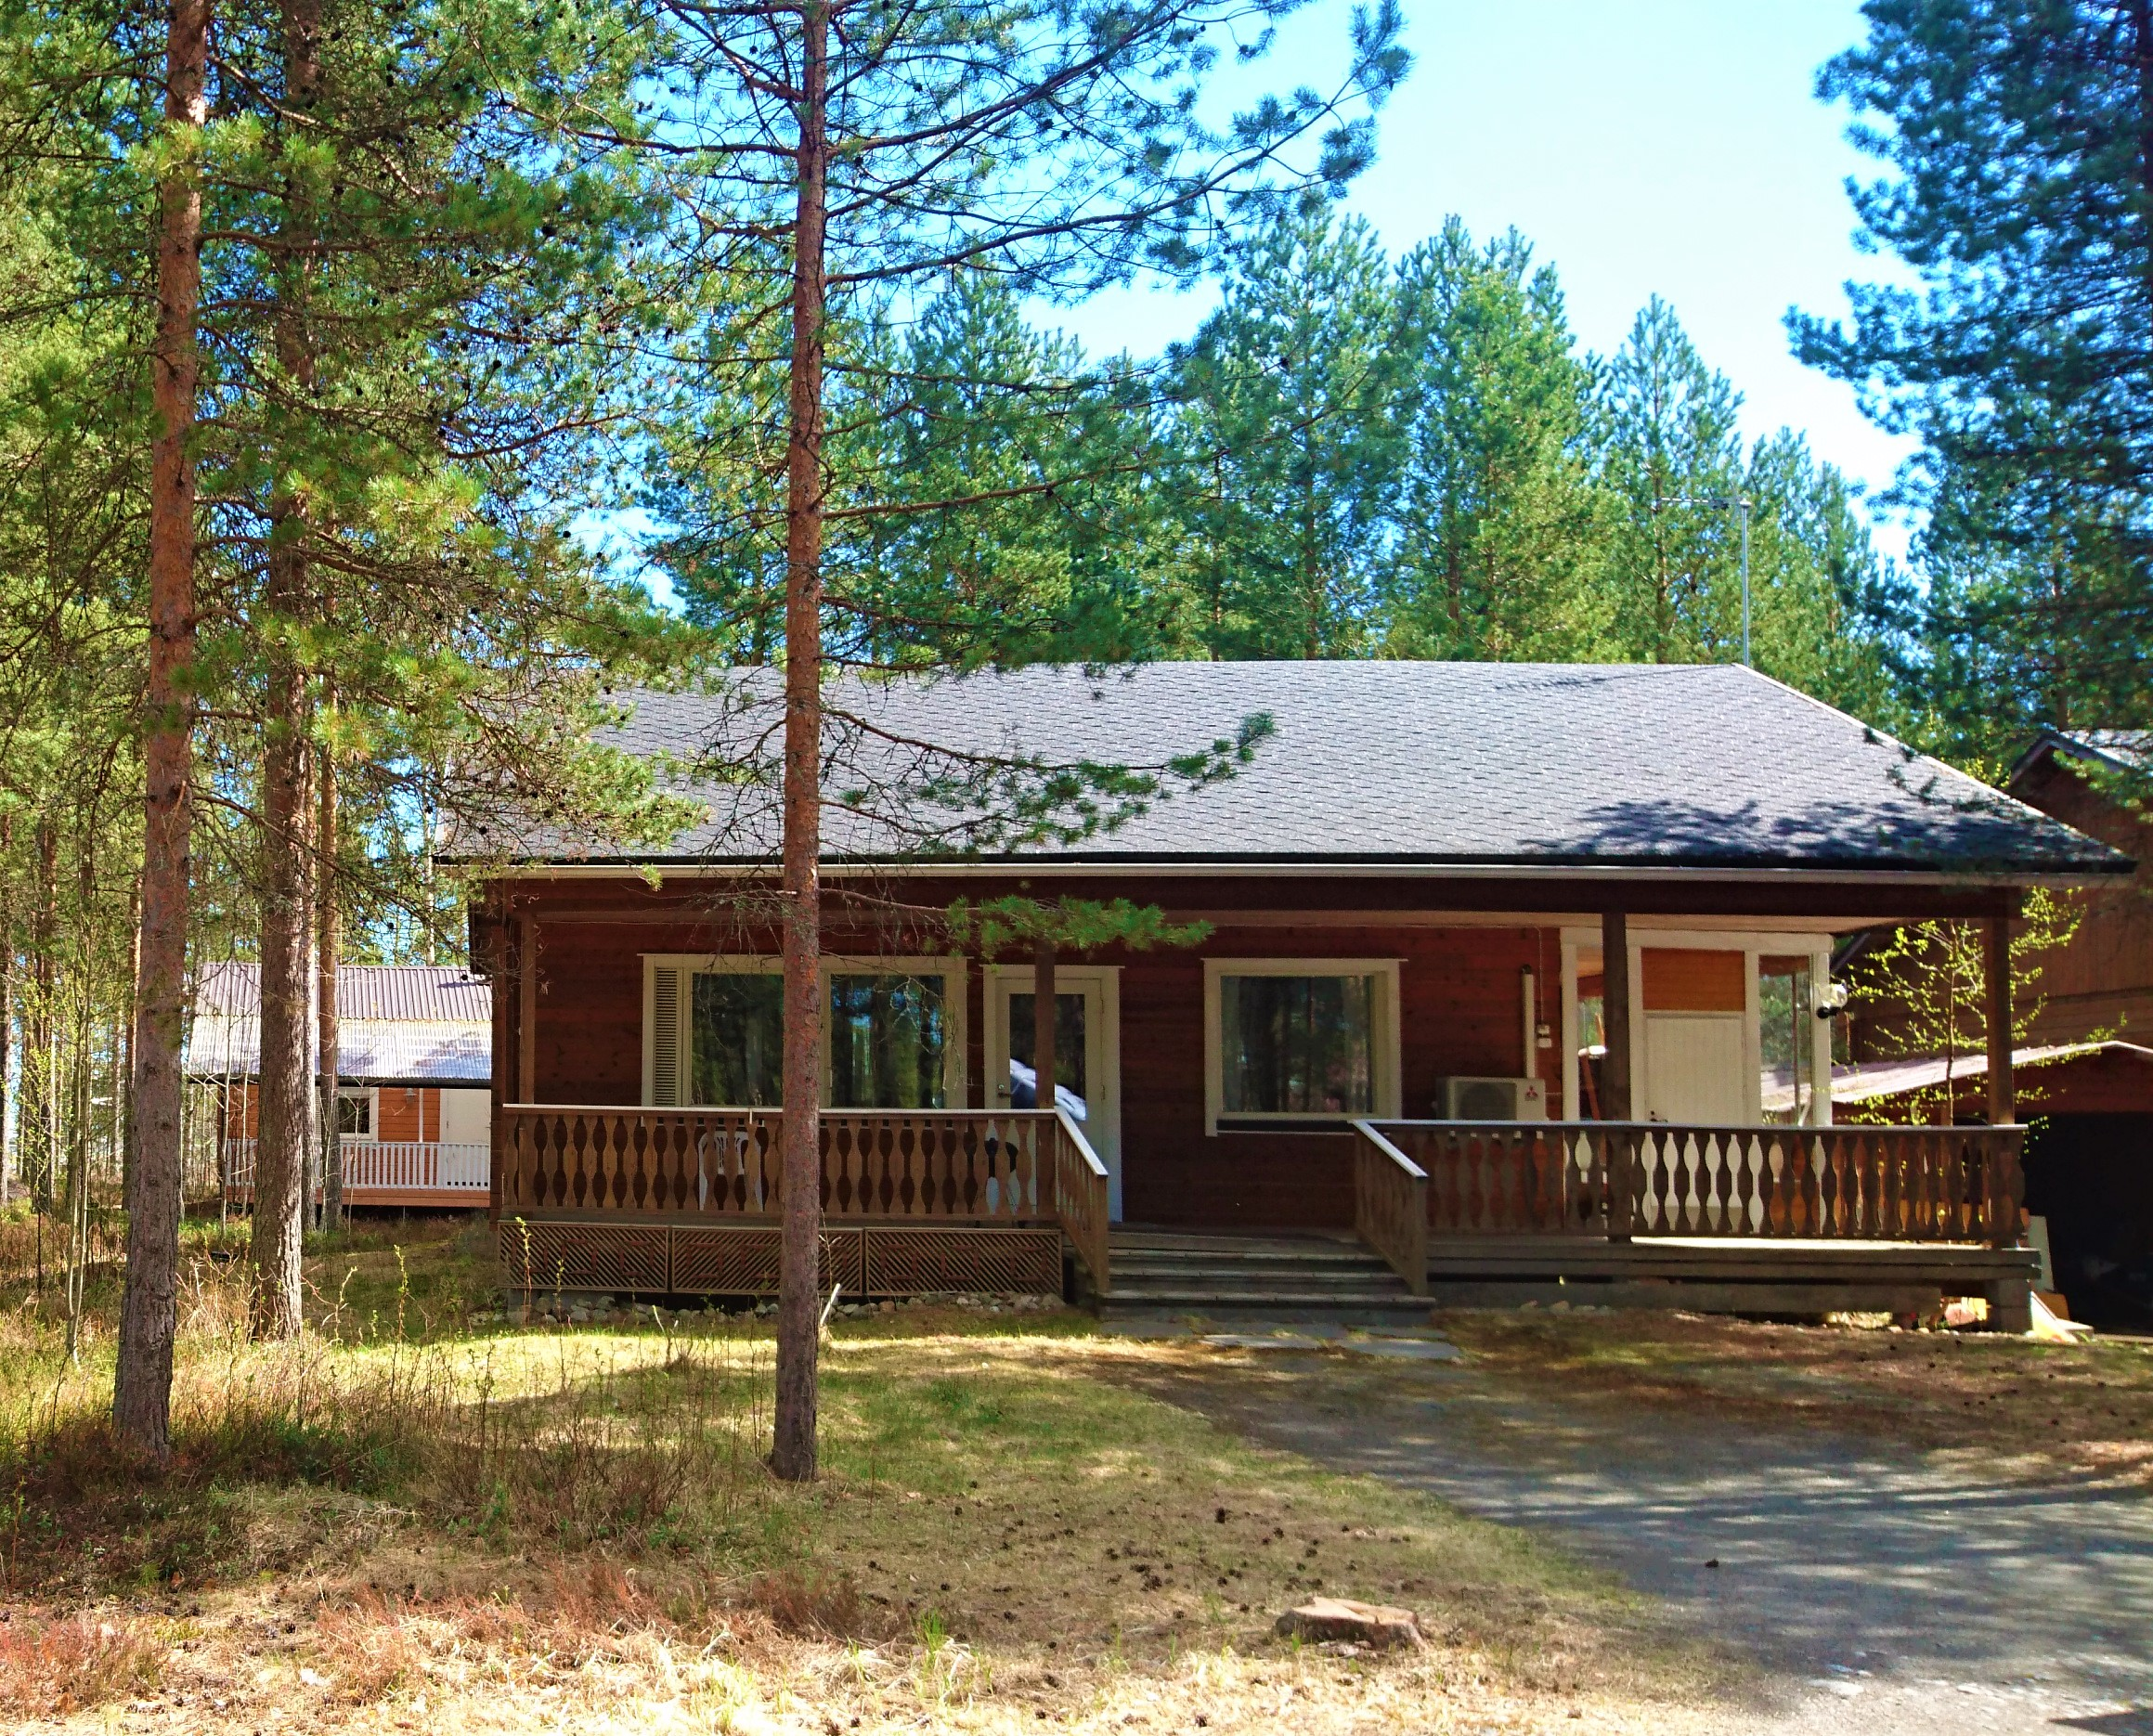 Kalajärvi Holiday Village